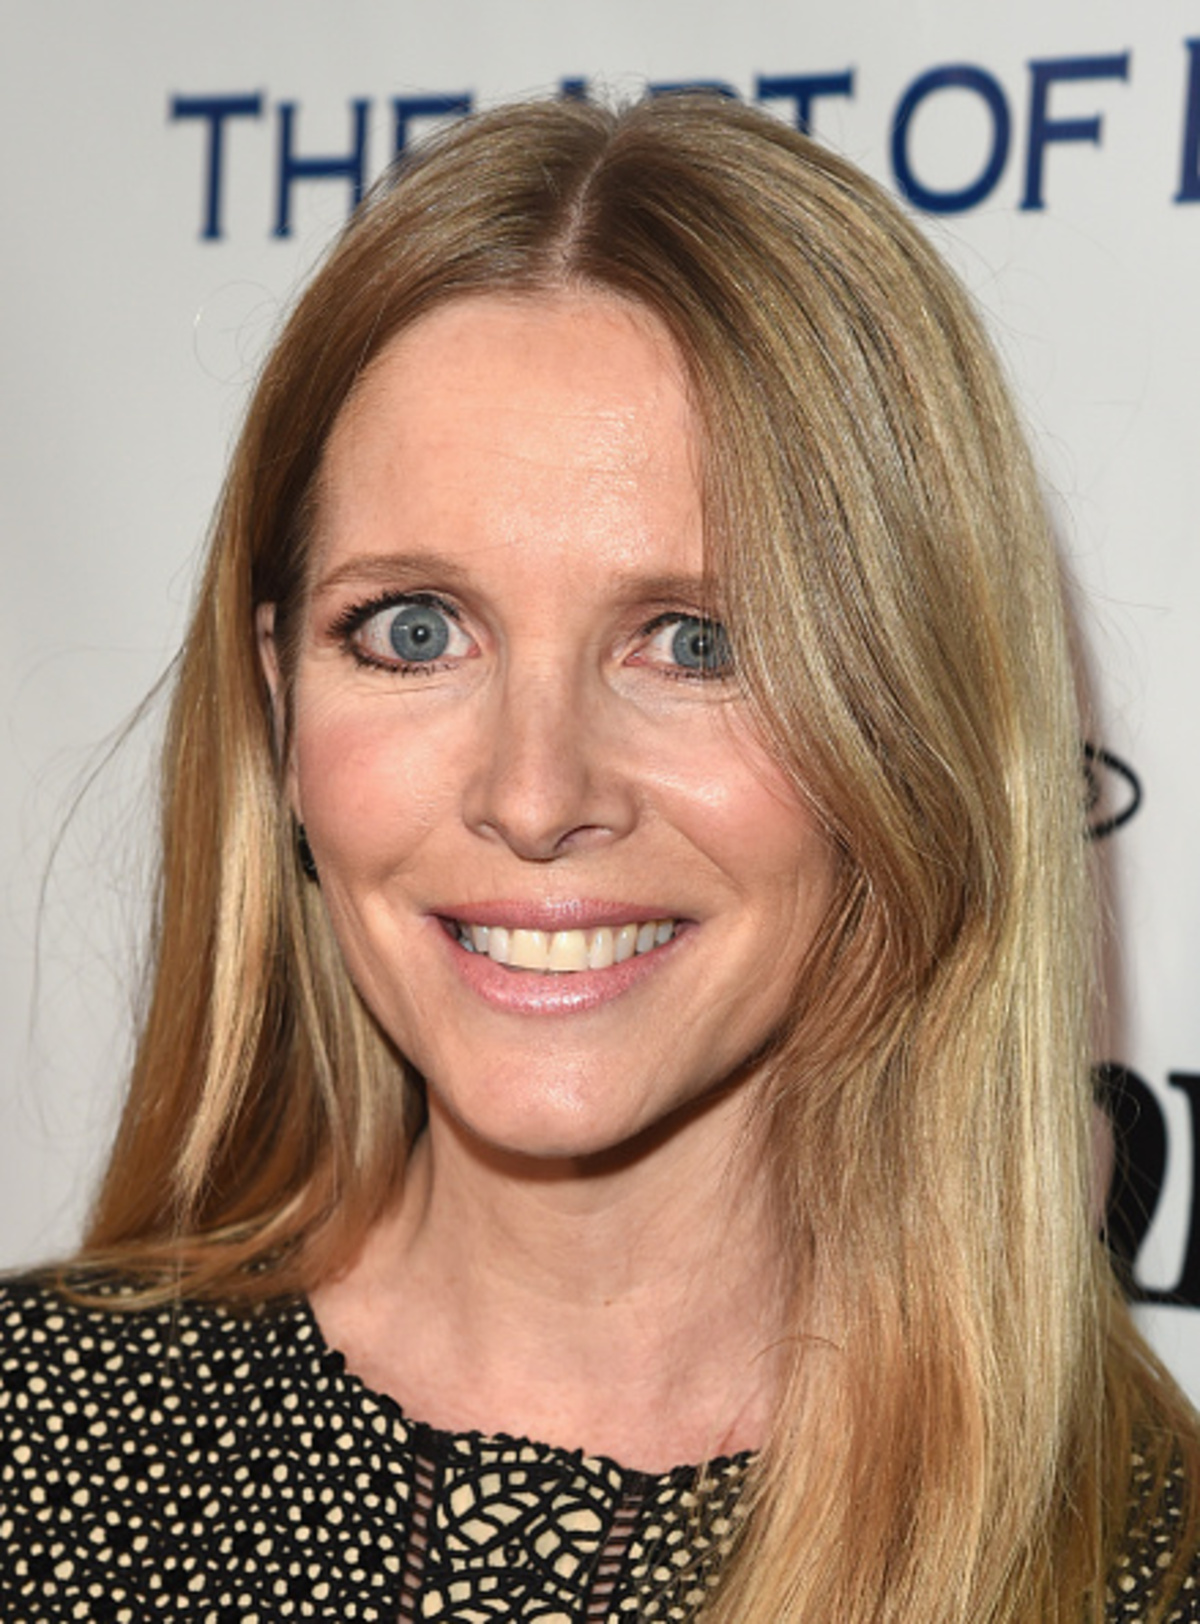 aebe5cb787f8d Lauralee Bell Net Worth